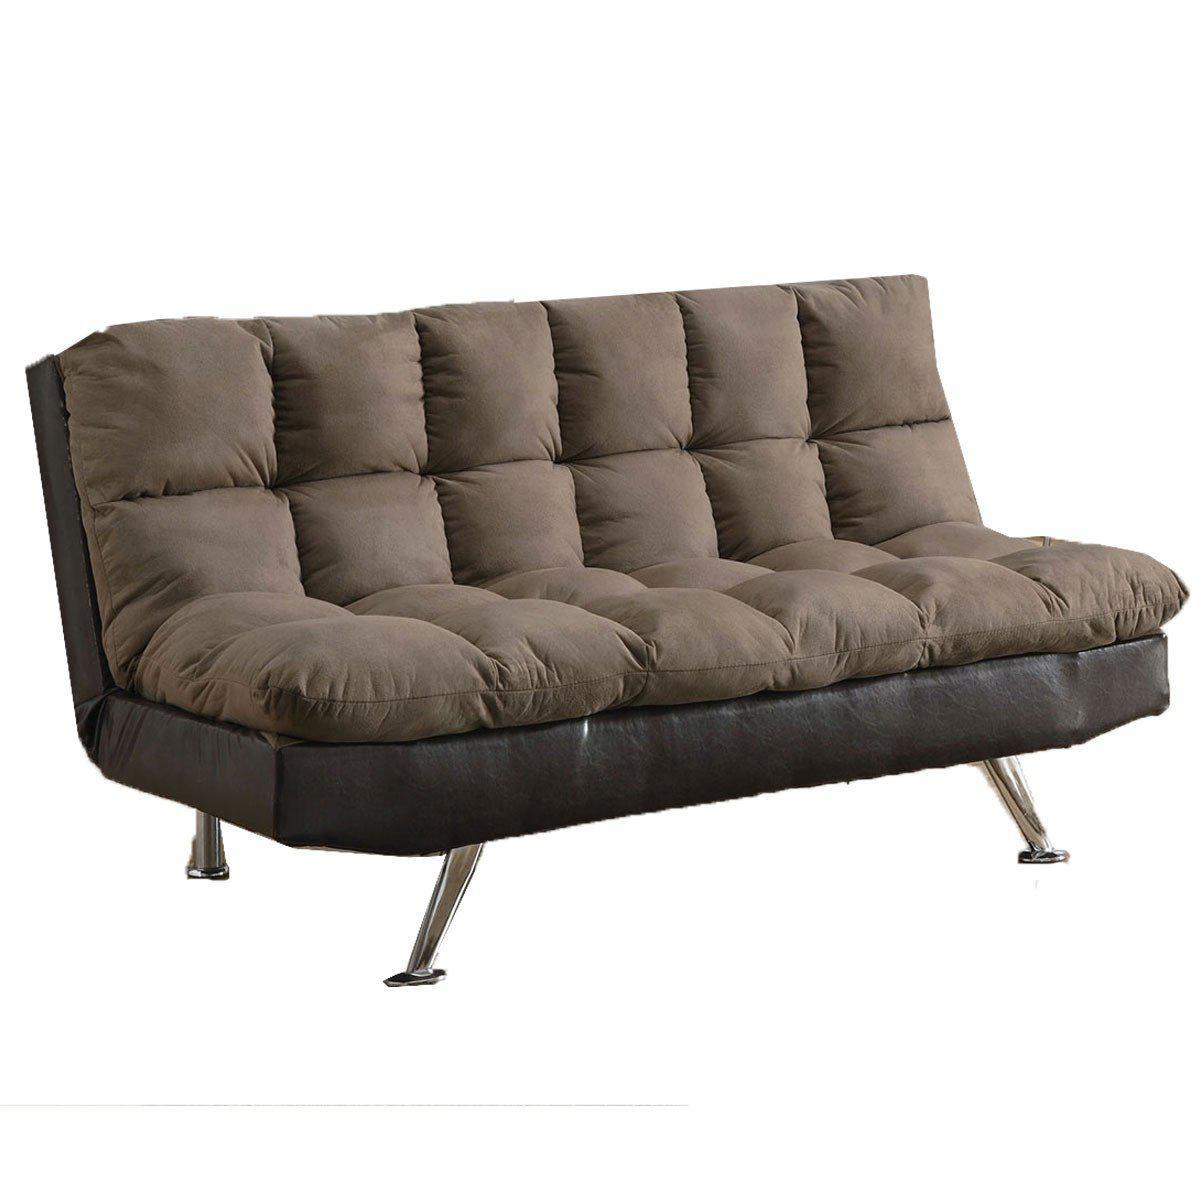 Moritz Sofa-sofas-Jennifer Furniture